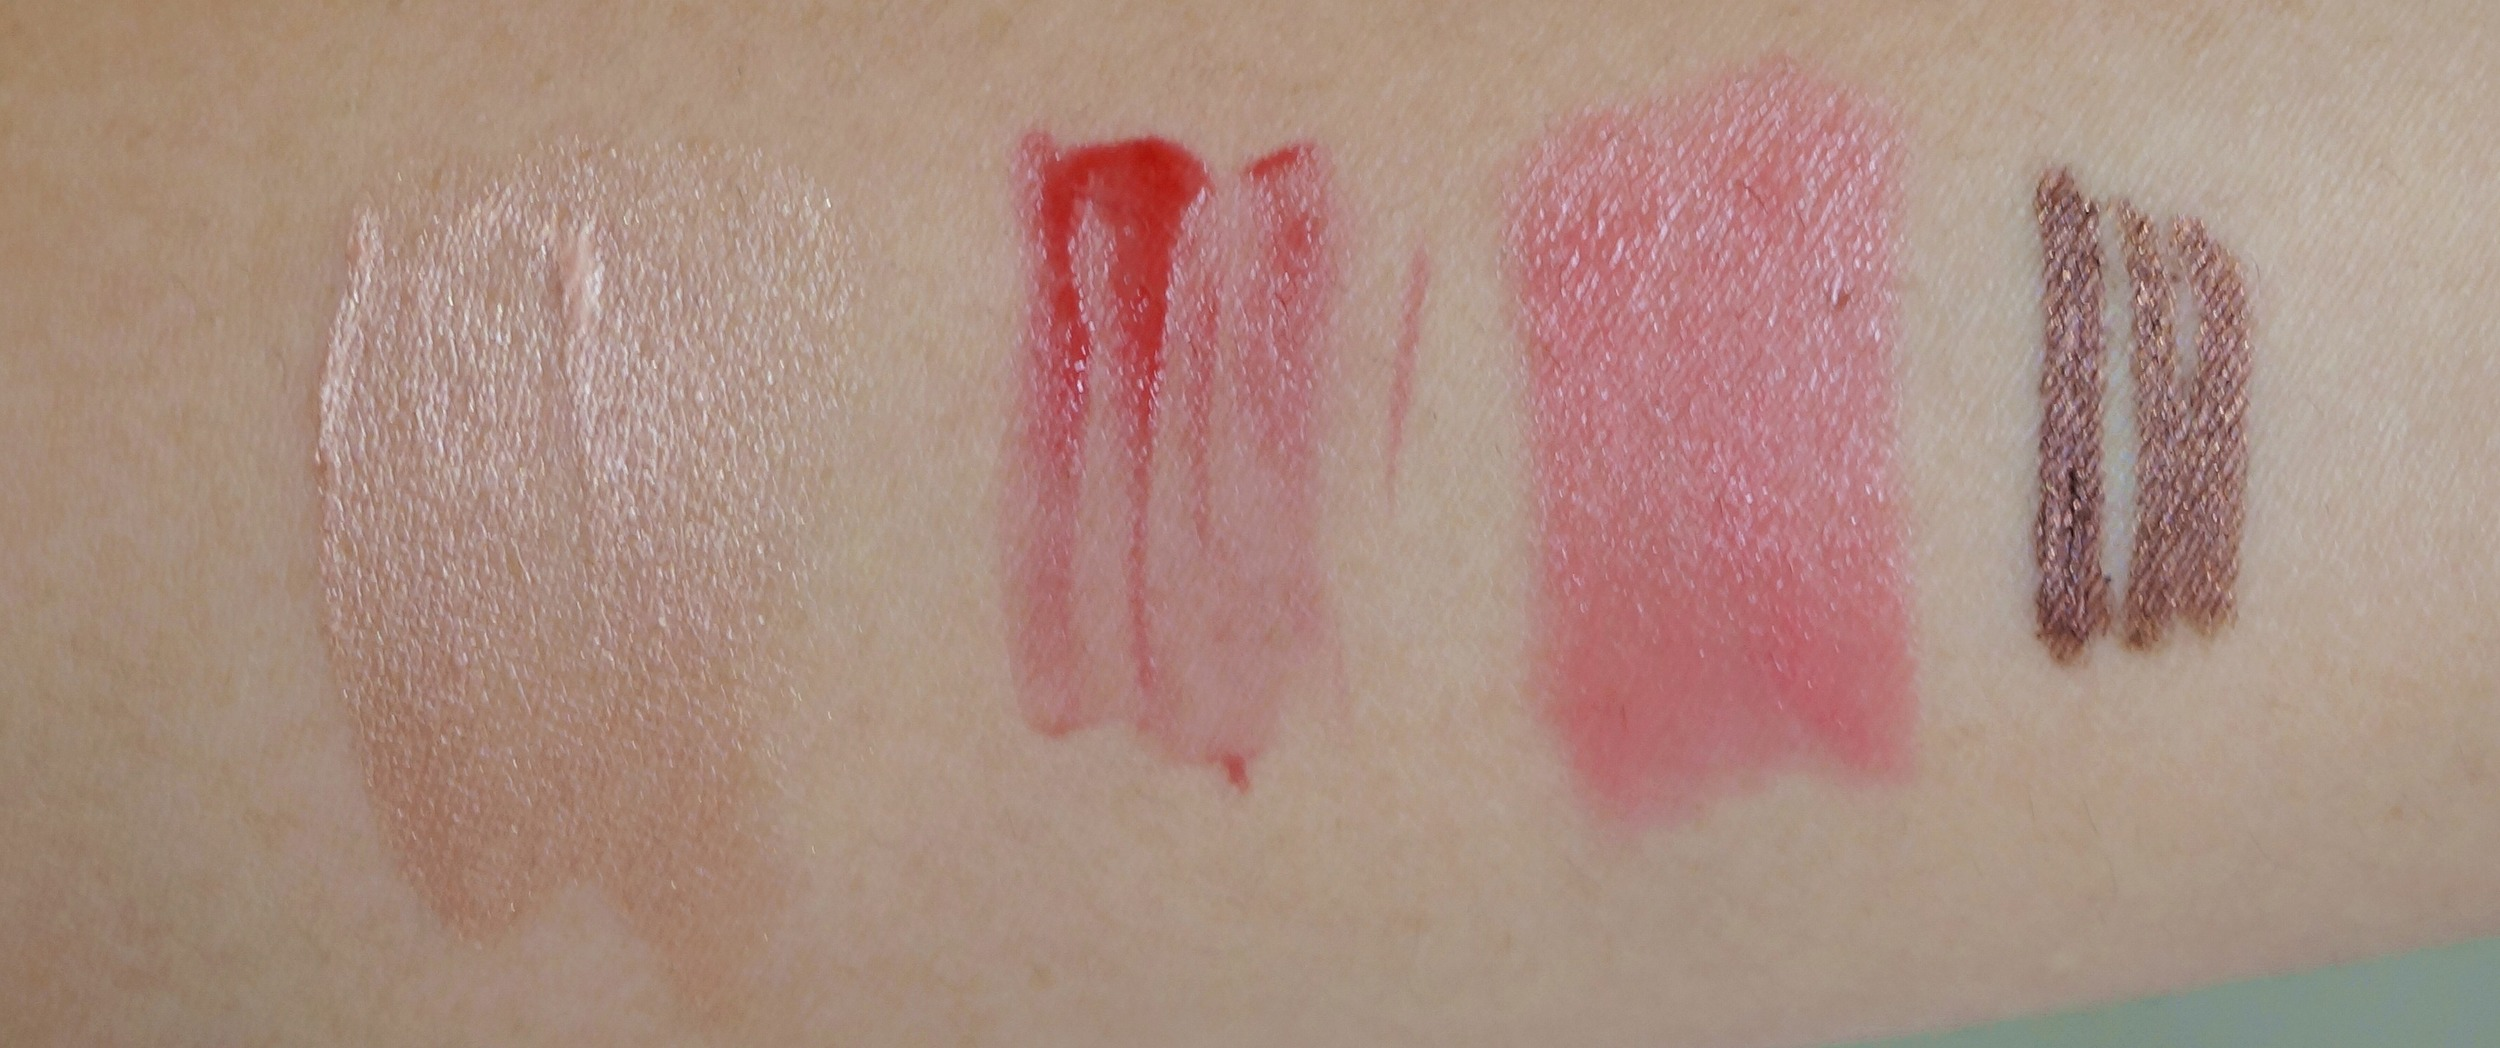 Swatch of the Flawless Primer, Sheer Cheek Gel in Flushes, Tinted Brilliance Balm in Baby Bare, BronzeBeam eyeliner